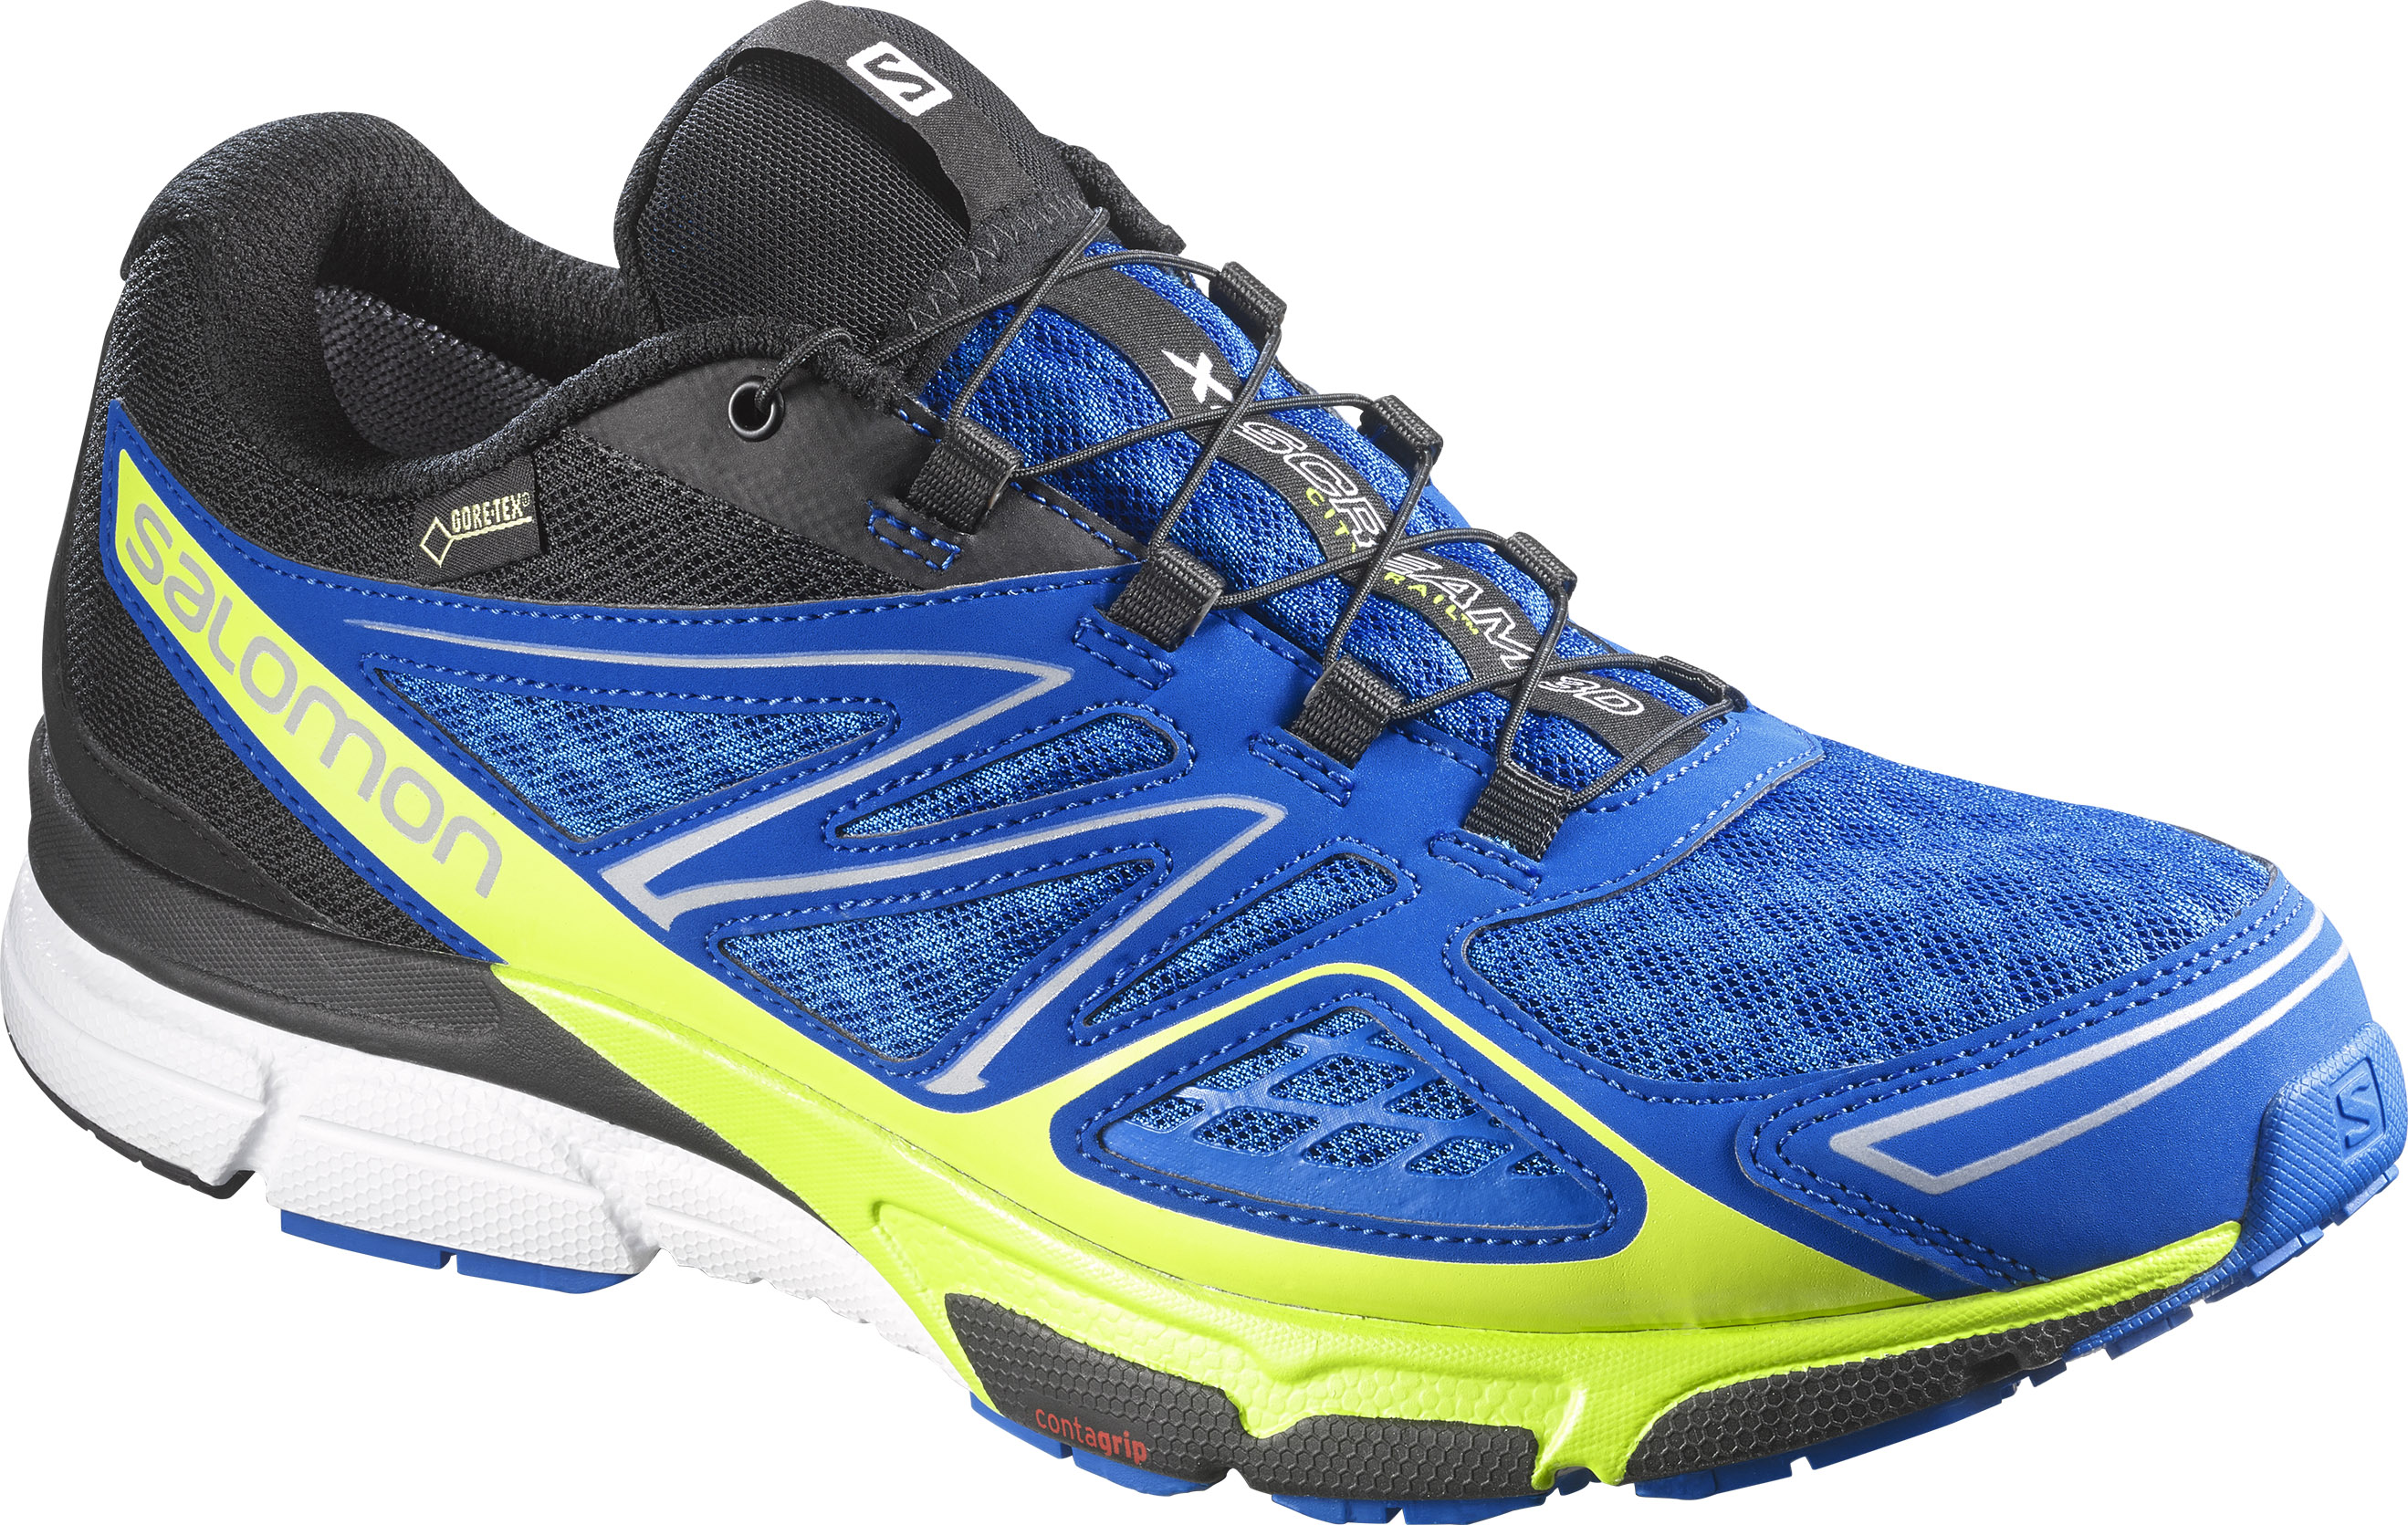 Salomon X-Scream 3D GTX 375965 46,6